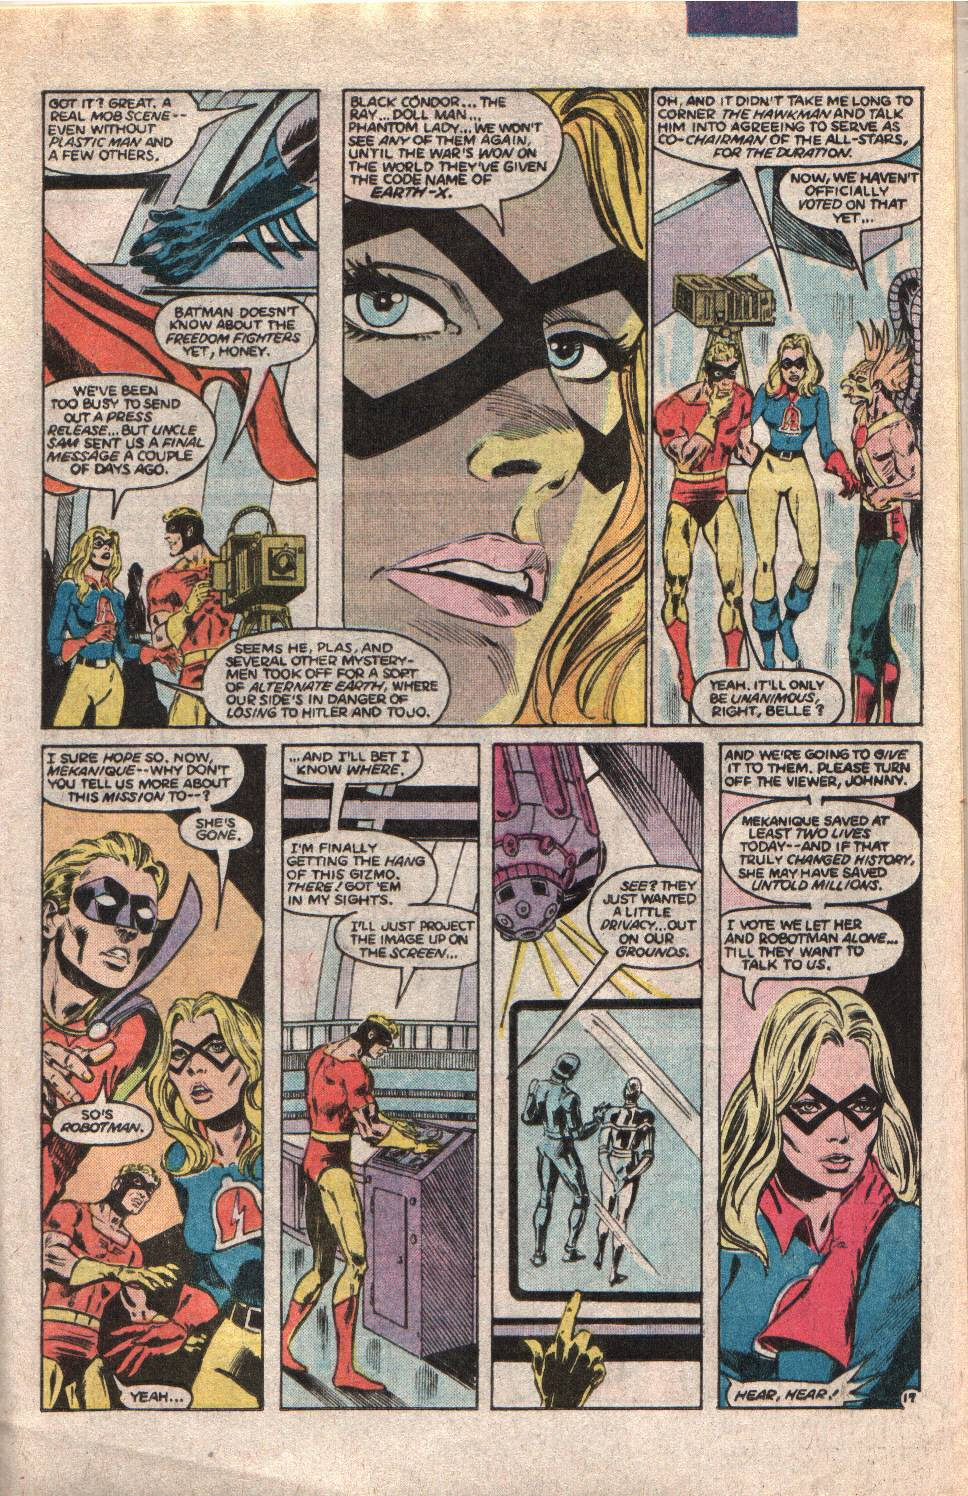 Read online All-Star Squadron comic -  Issue #60 - 25